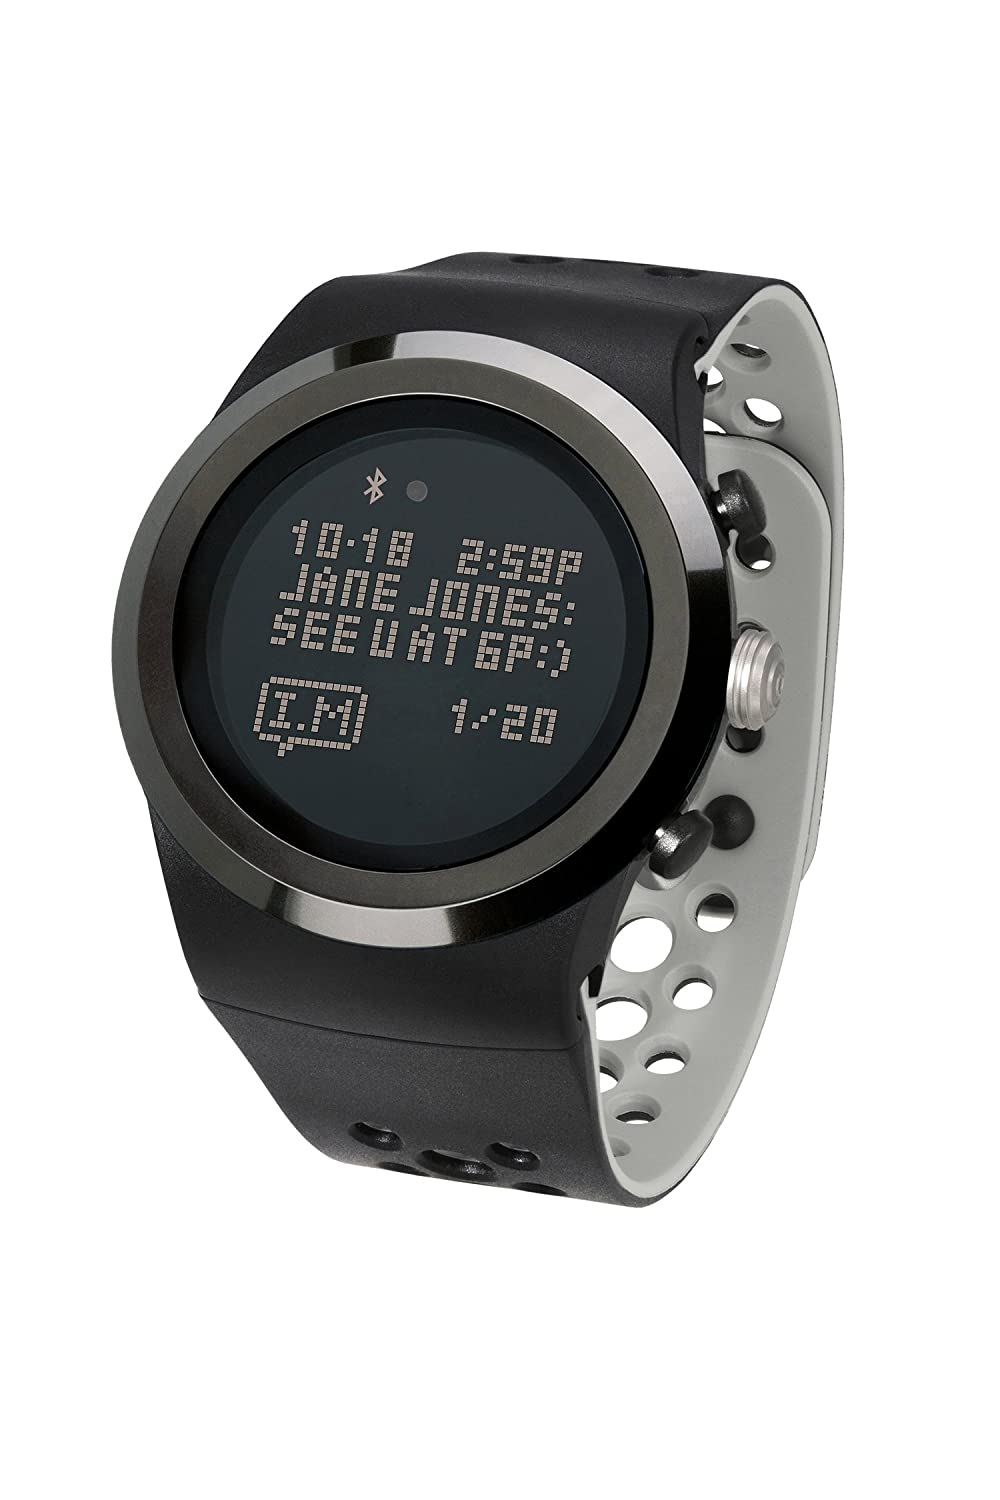 Lifetrak Brite R450 Heart Rate Watch Midnight Black Titanium Amazon In Sports Fitness Outdoors